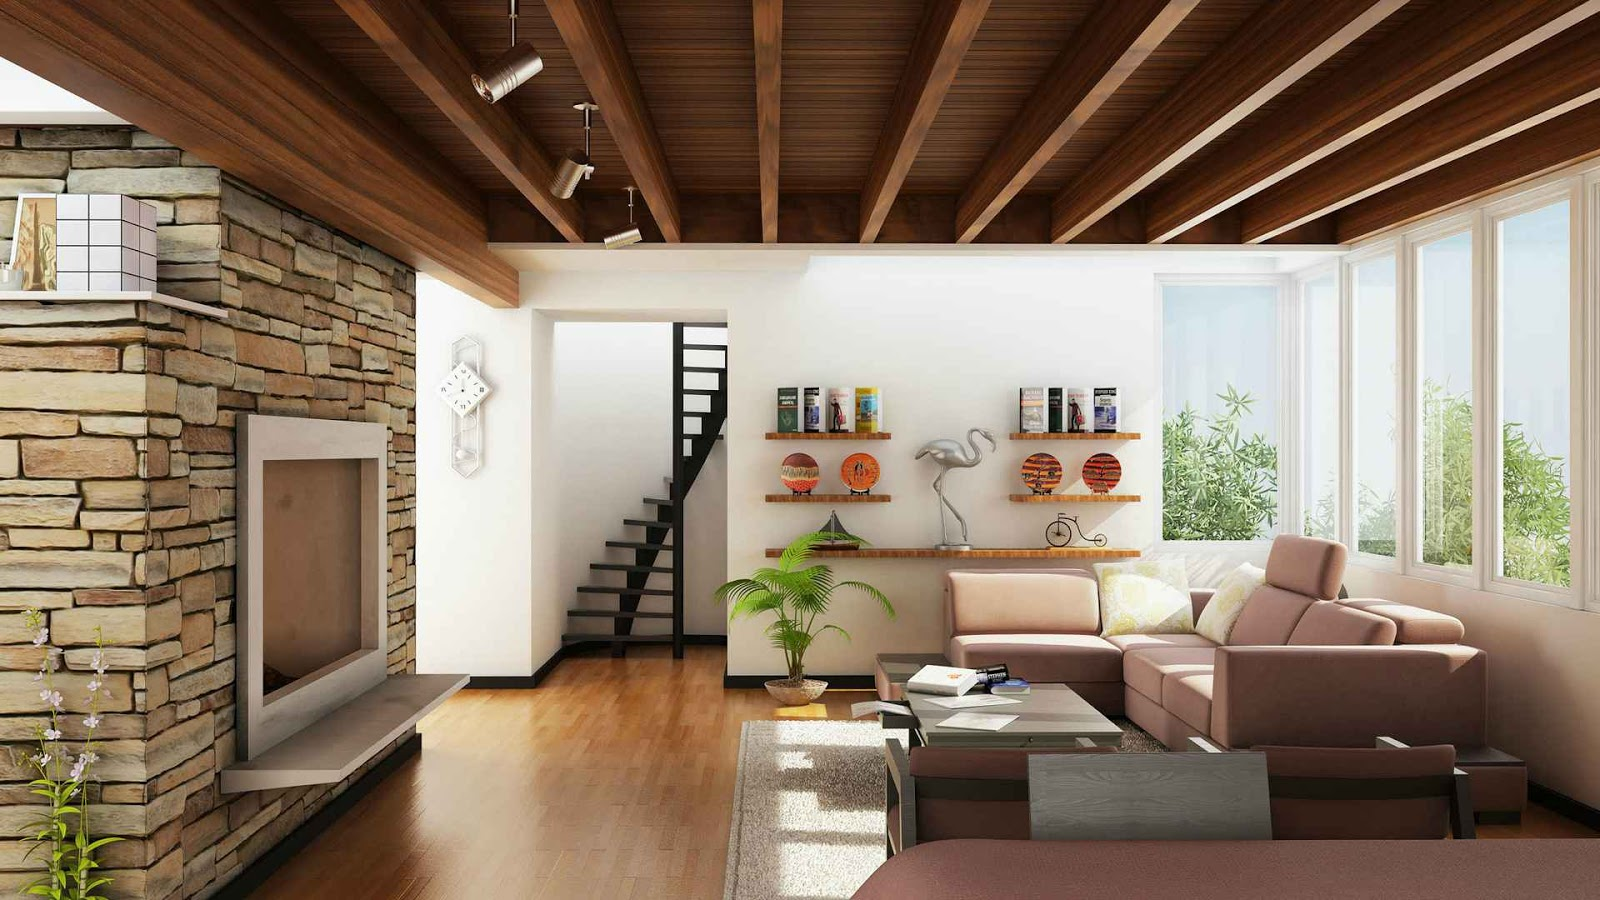 Planning your home interiors Minimalism in HOME DESIGN